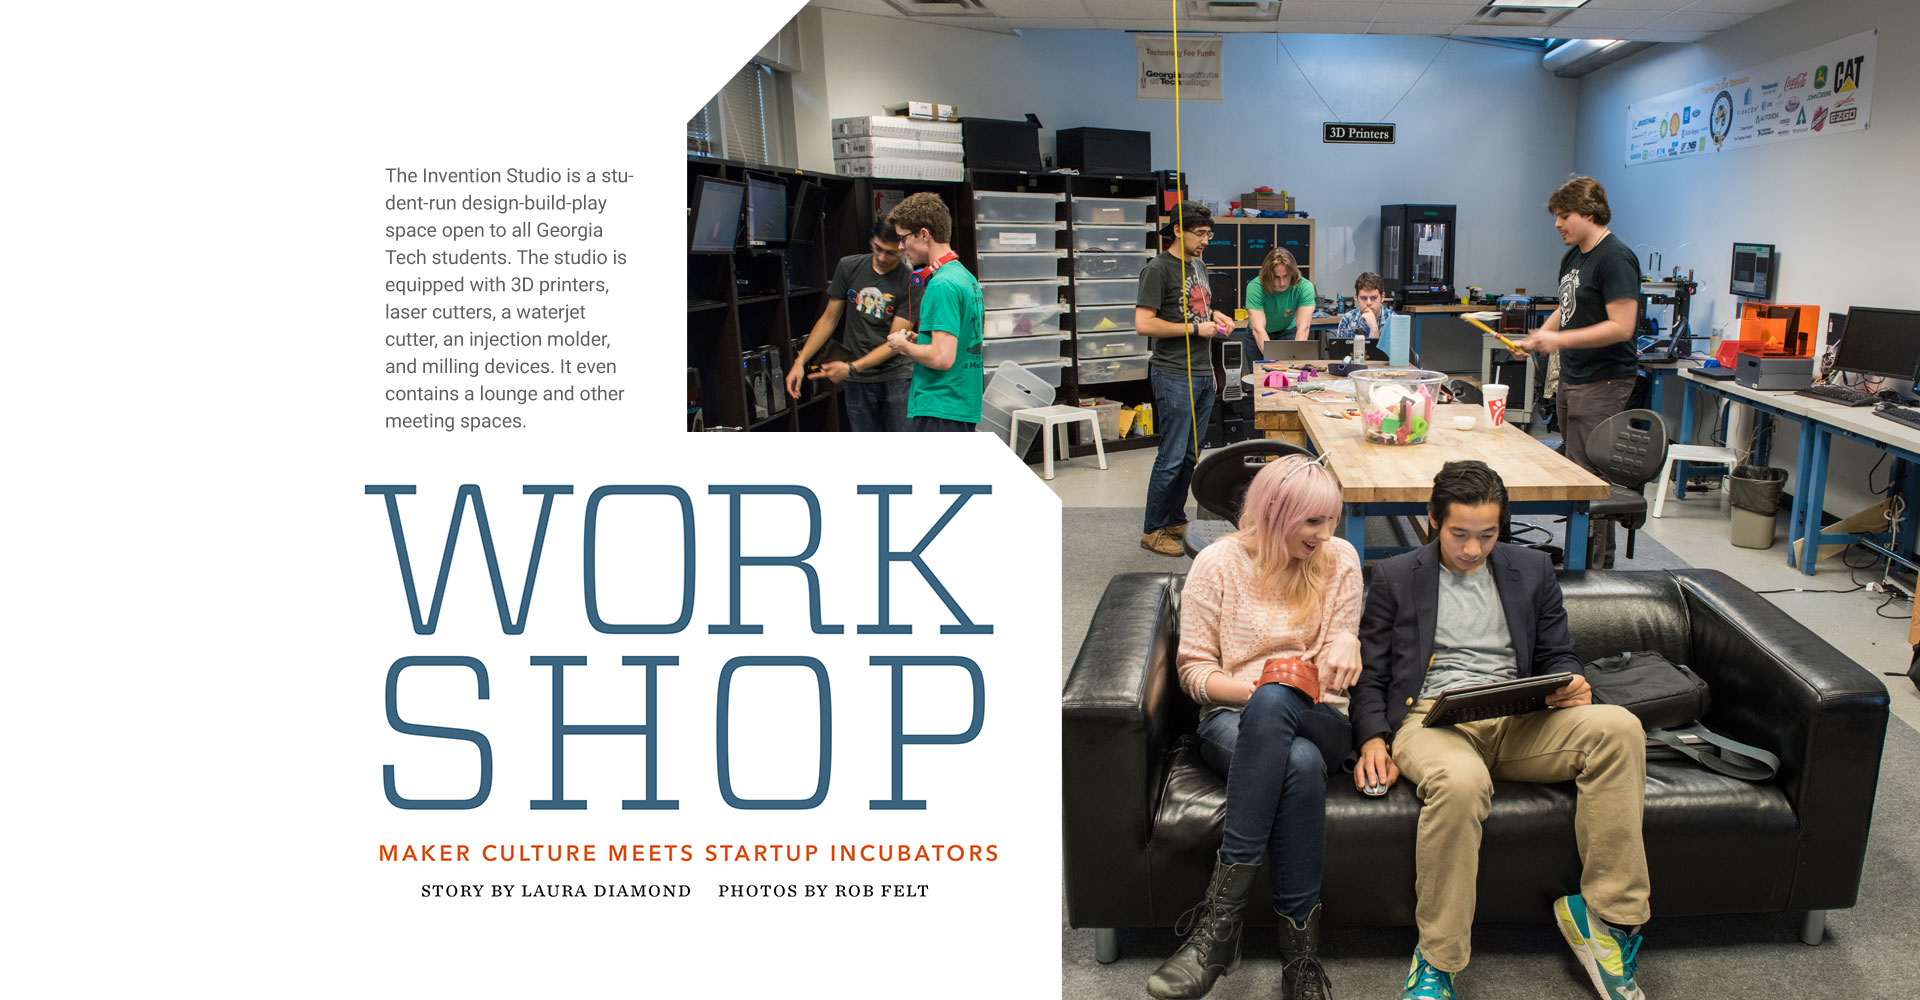 The Invention Studio is a student-run design-build-play space open to all Georgia Tech students. The studio is equipped with 3D printers, laser cutters, a waterjet cutter, an injection molder, and milling devices. It even contains a lounge and other meeting spaces.